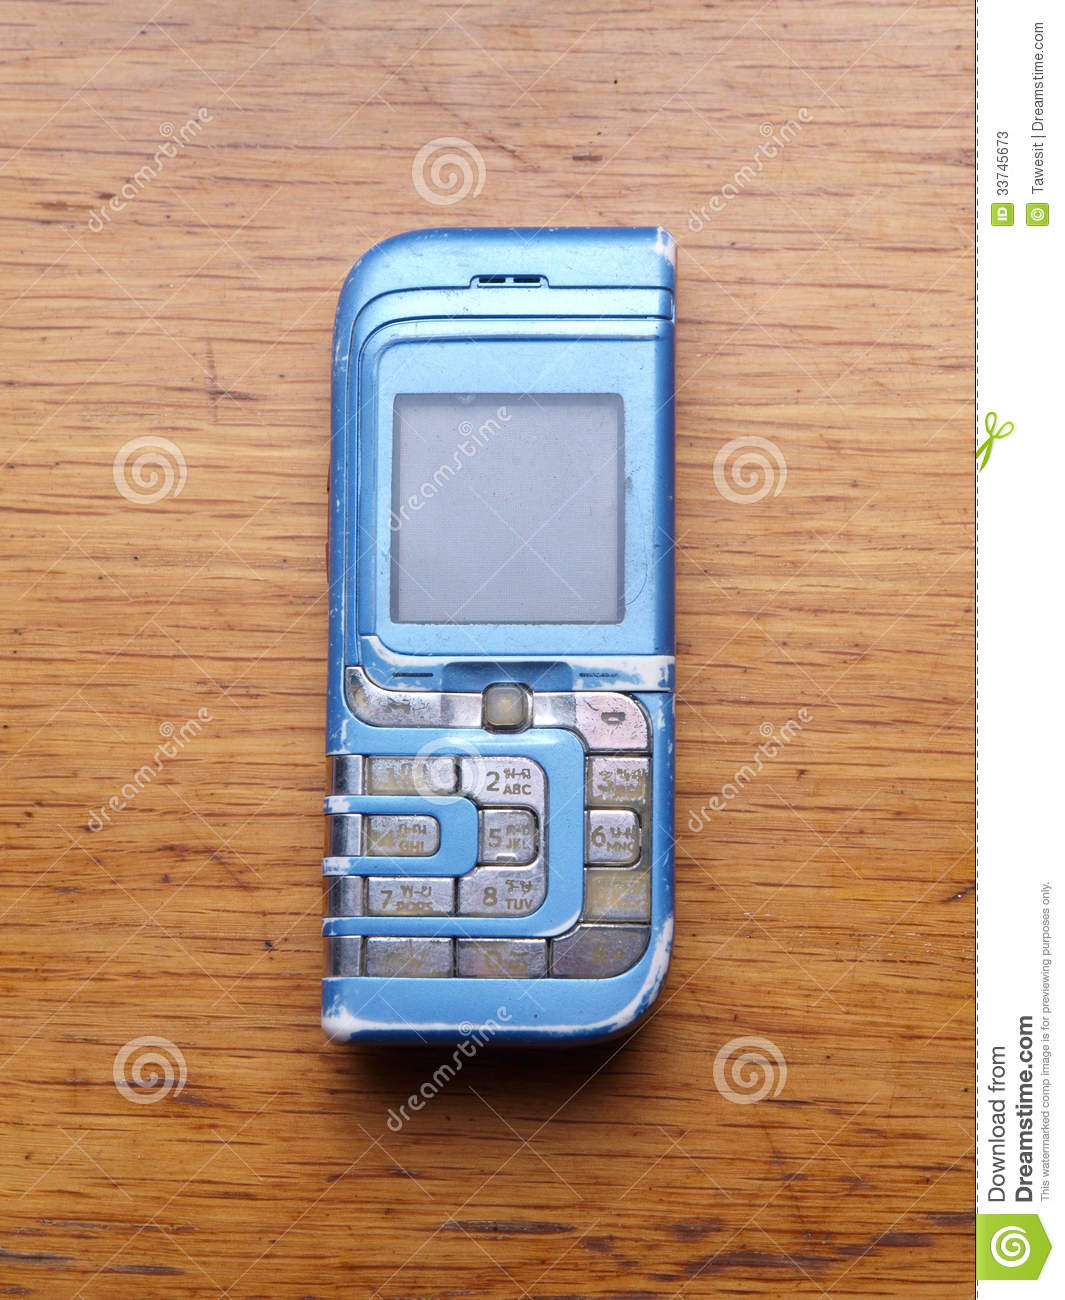 Old fashioned style cell phone stock photos image 33745673 - Vintage look mobel ...